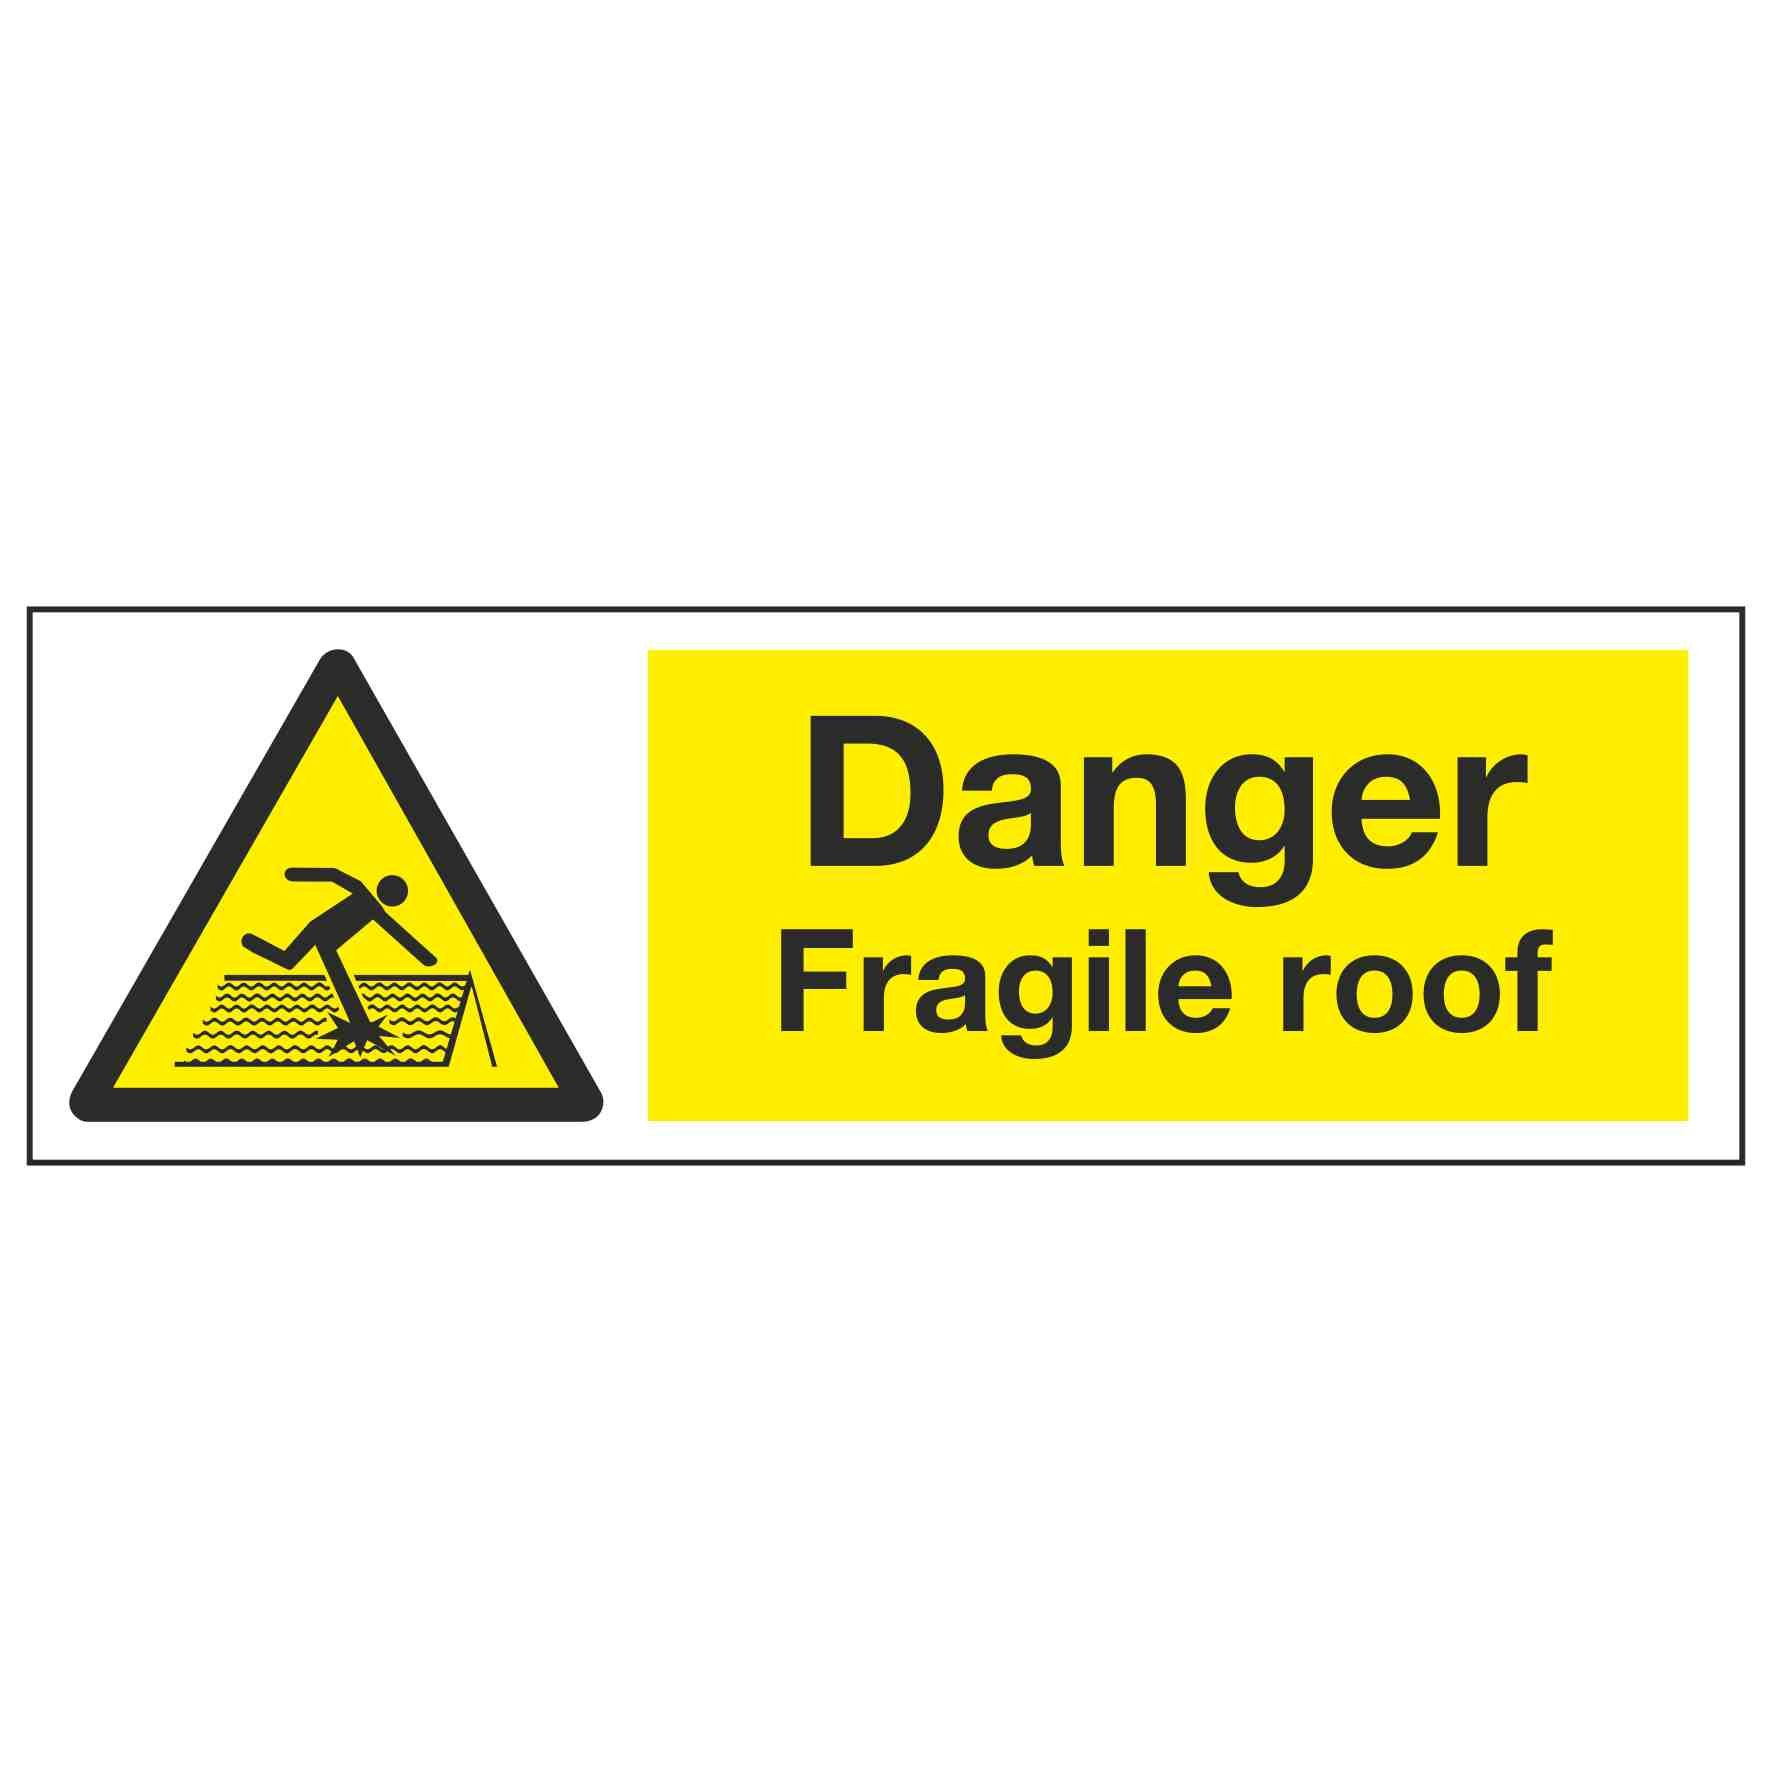 Danger Fragile Roof Linden Signs Amp Print